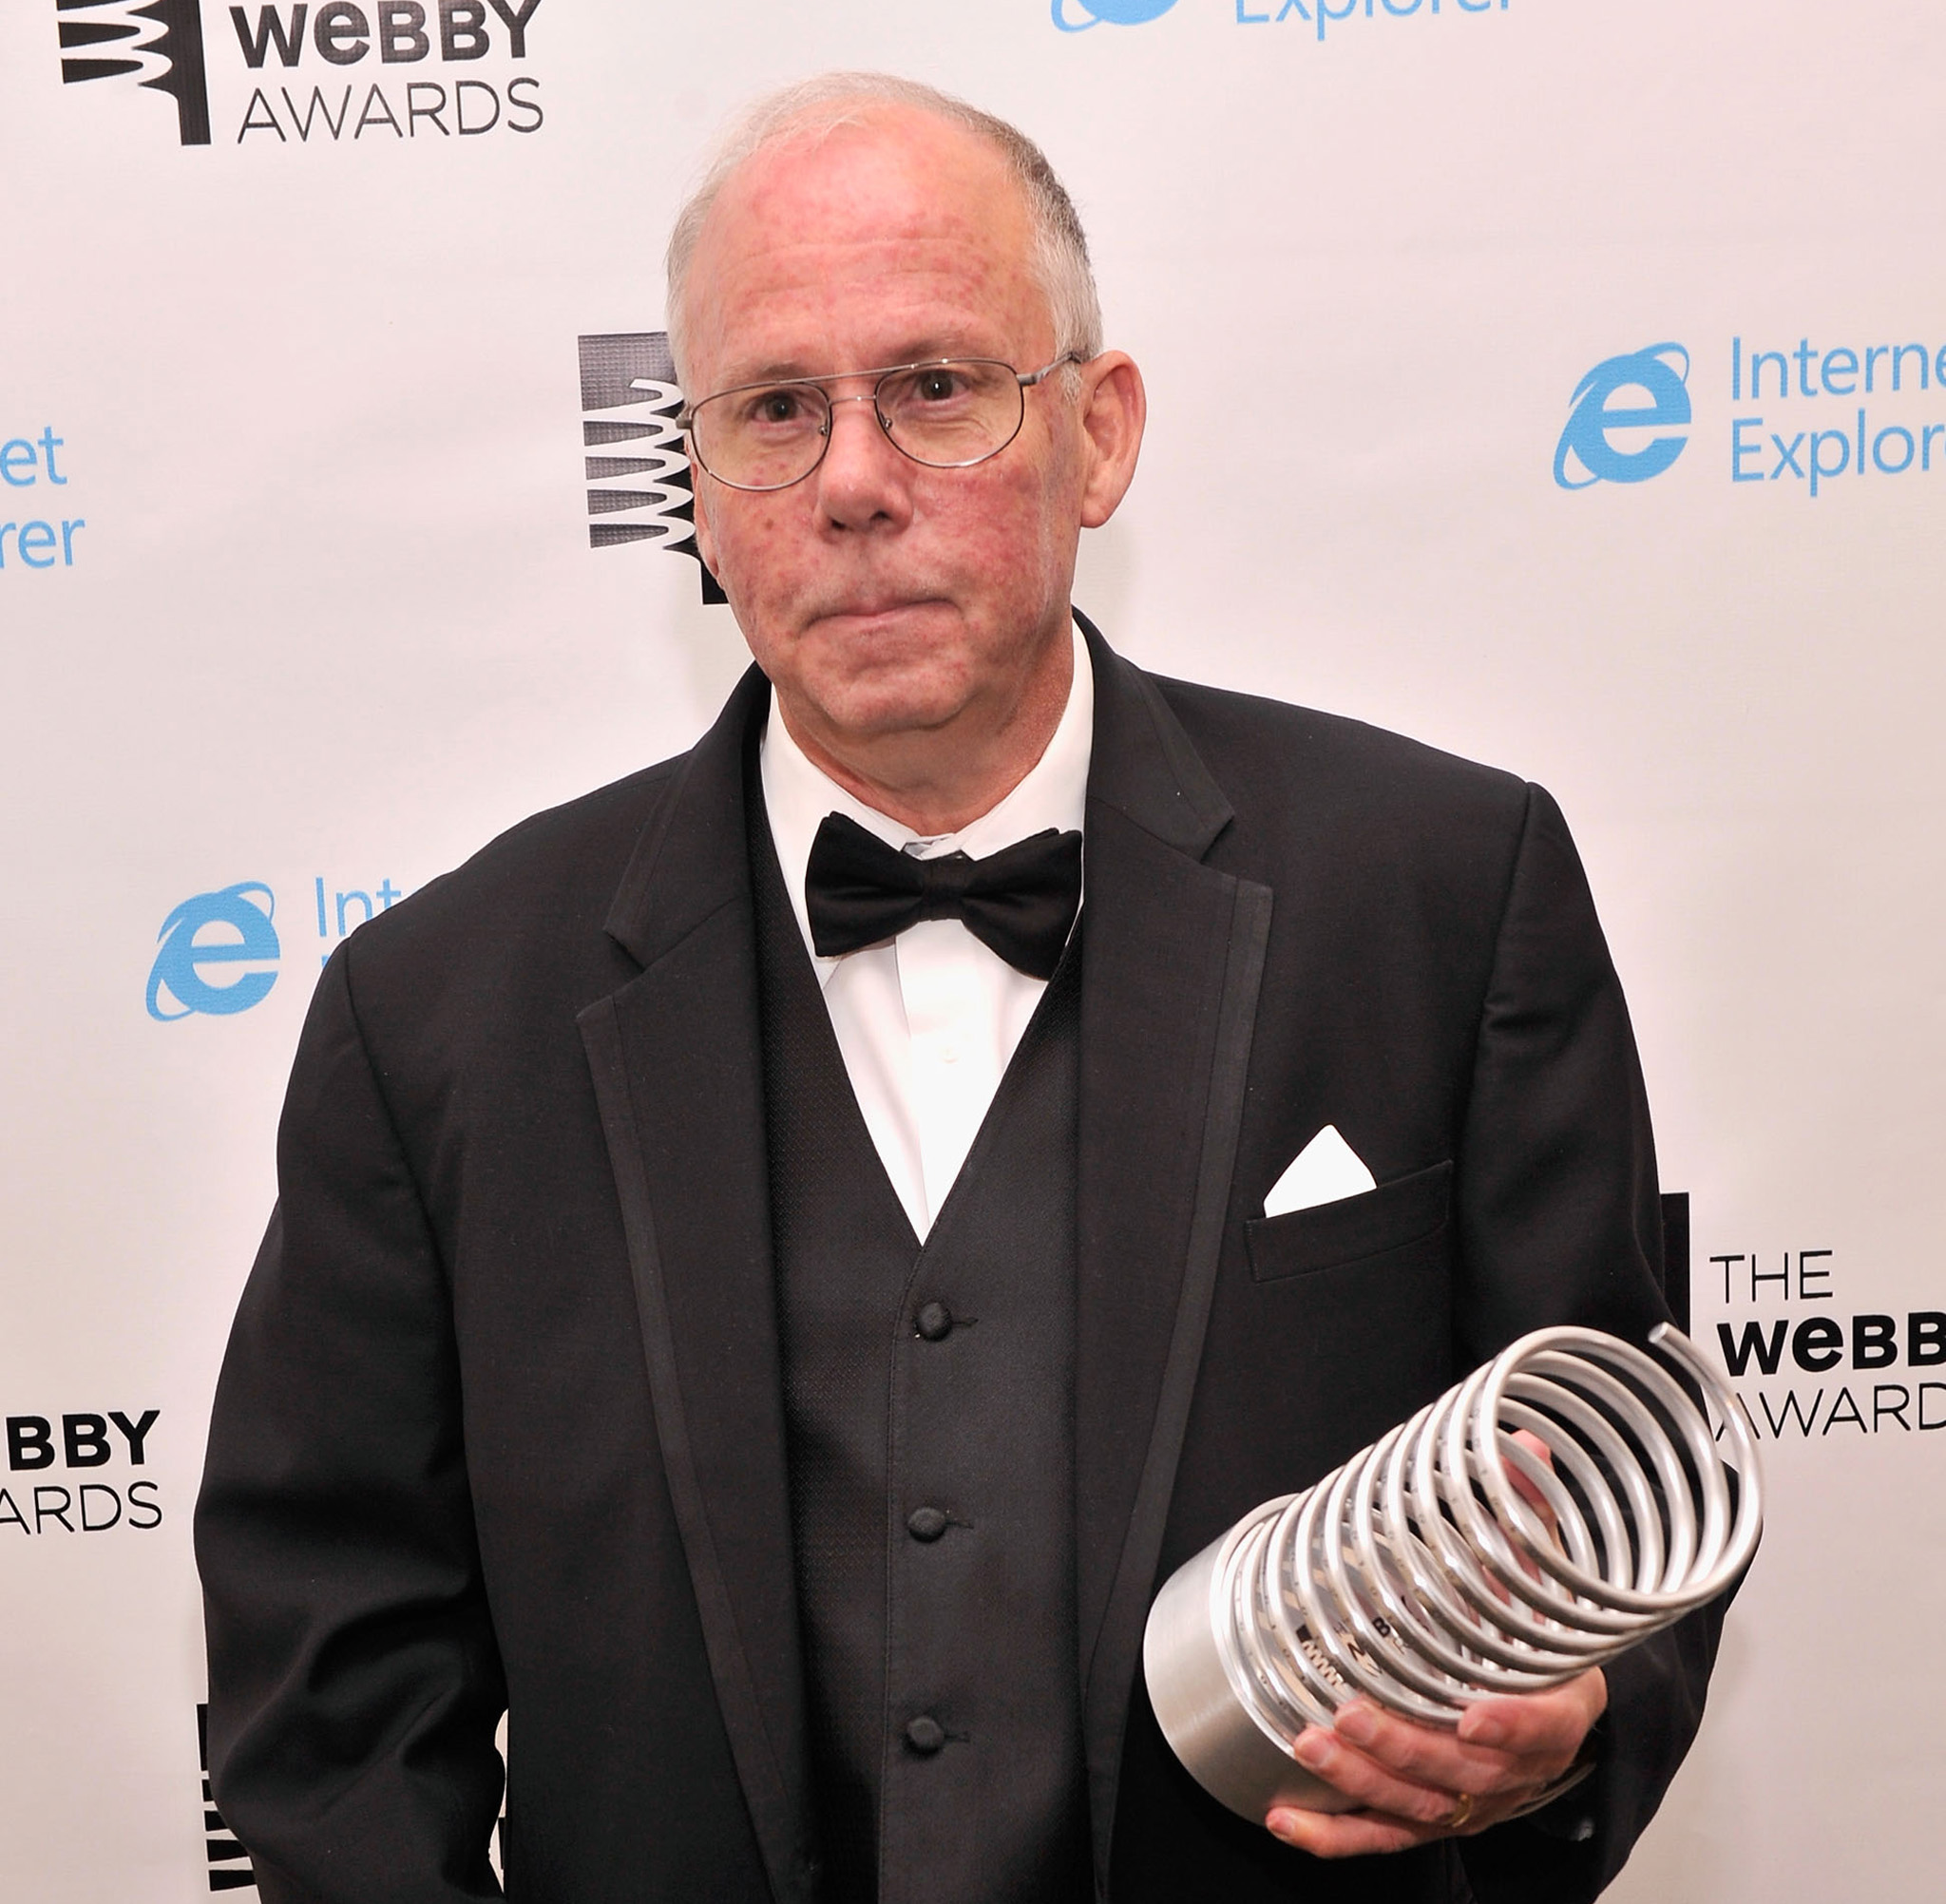 The 17th Annual Webby Awards - Backstage